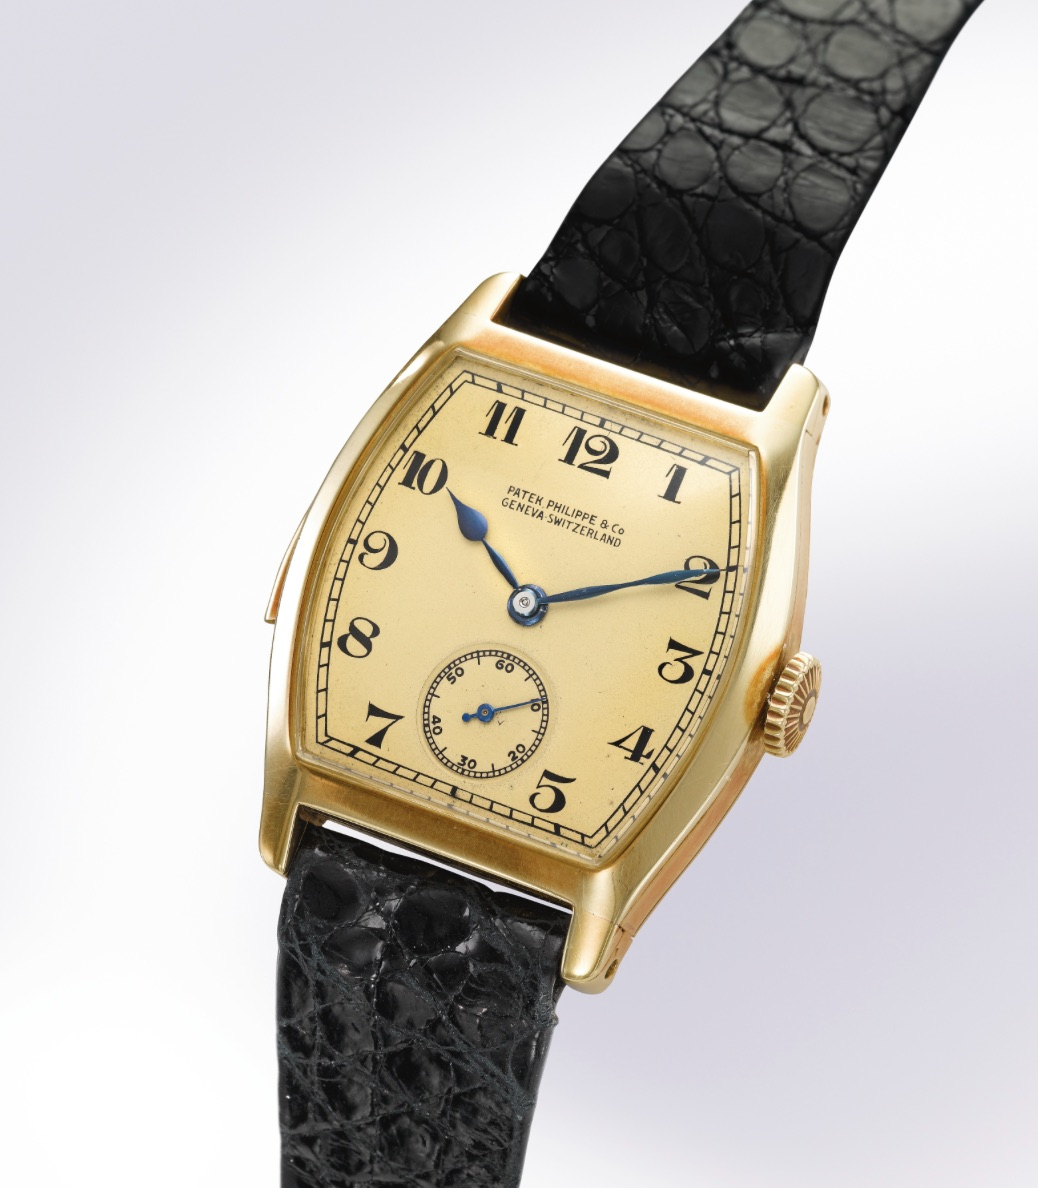 patek philippe minute repeater tonneau henry graves - Shaped Watches by Vacheron Constantin and Patek Philippe